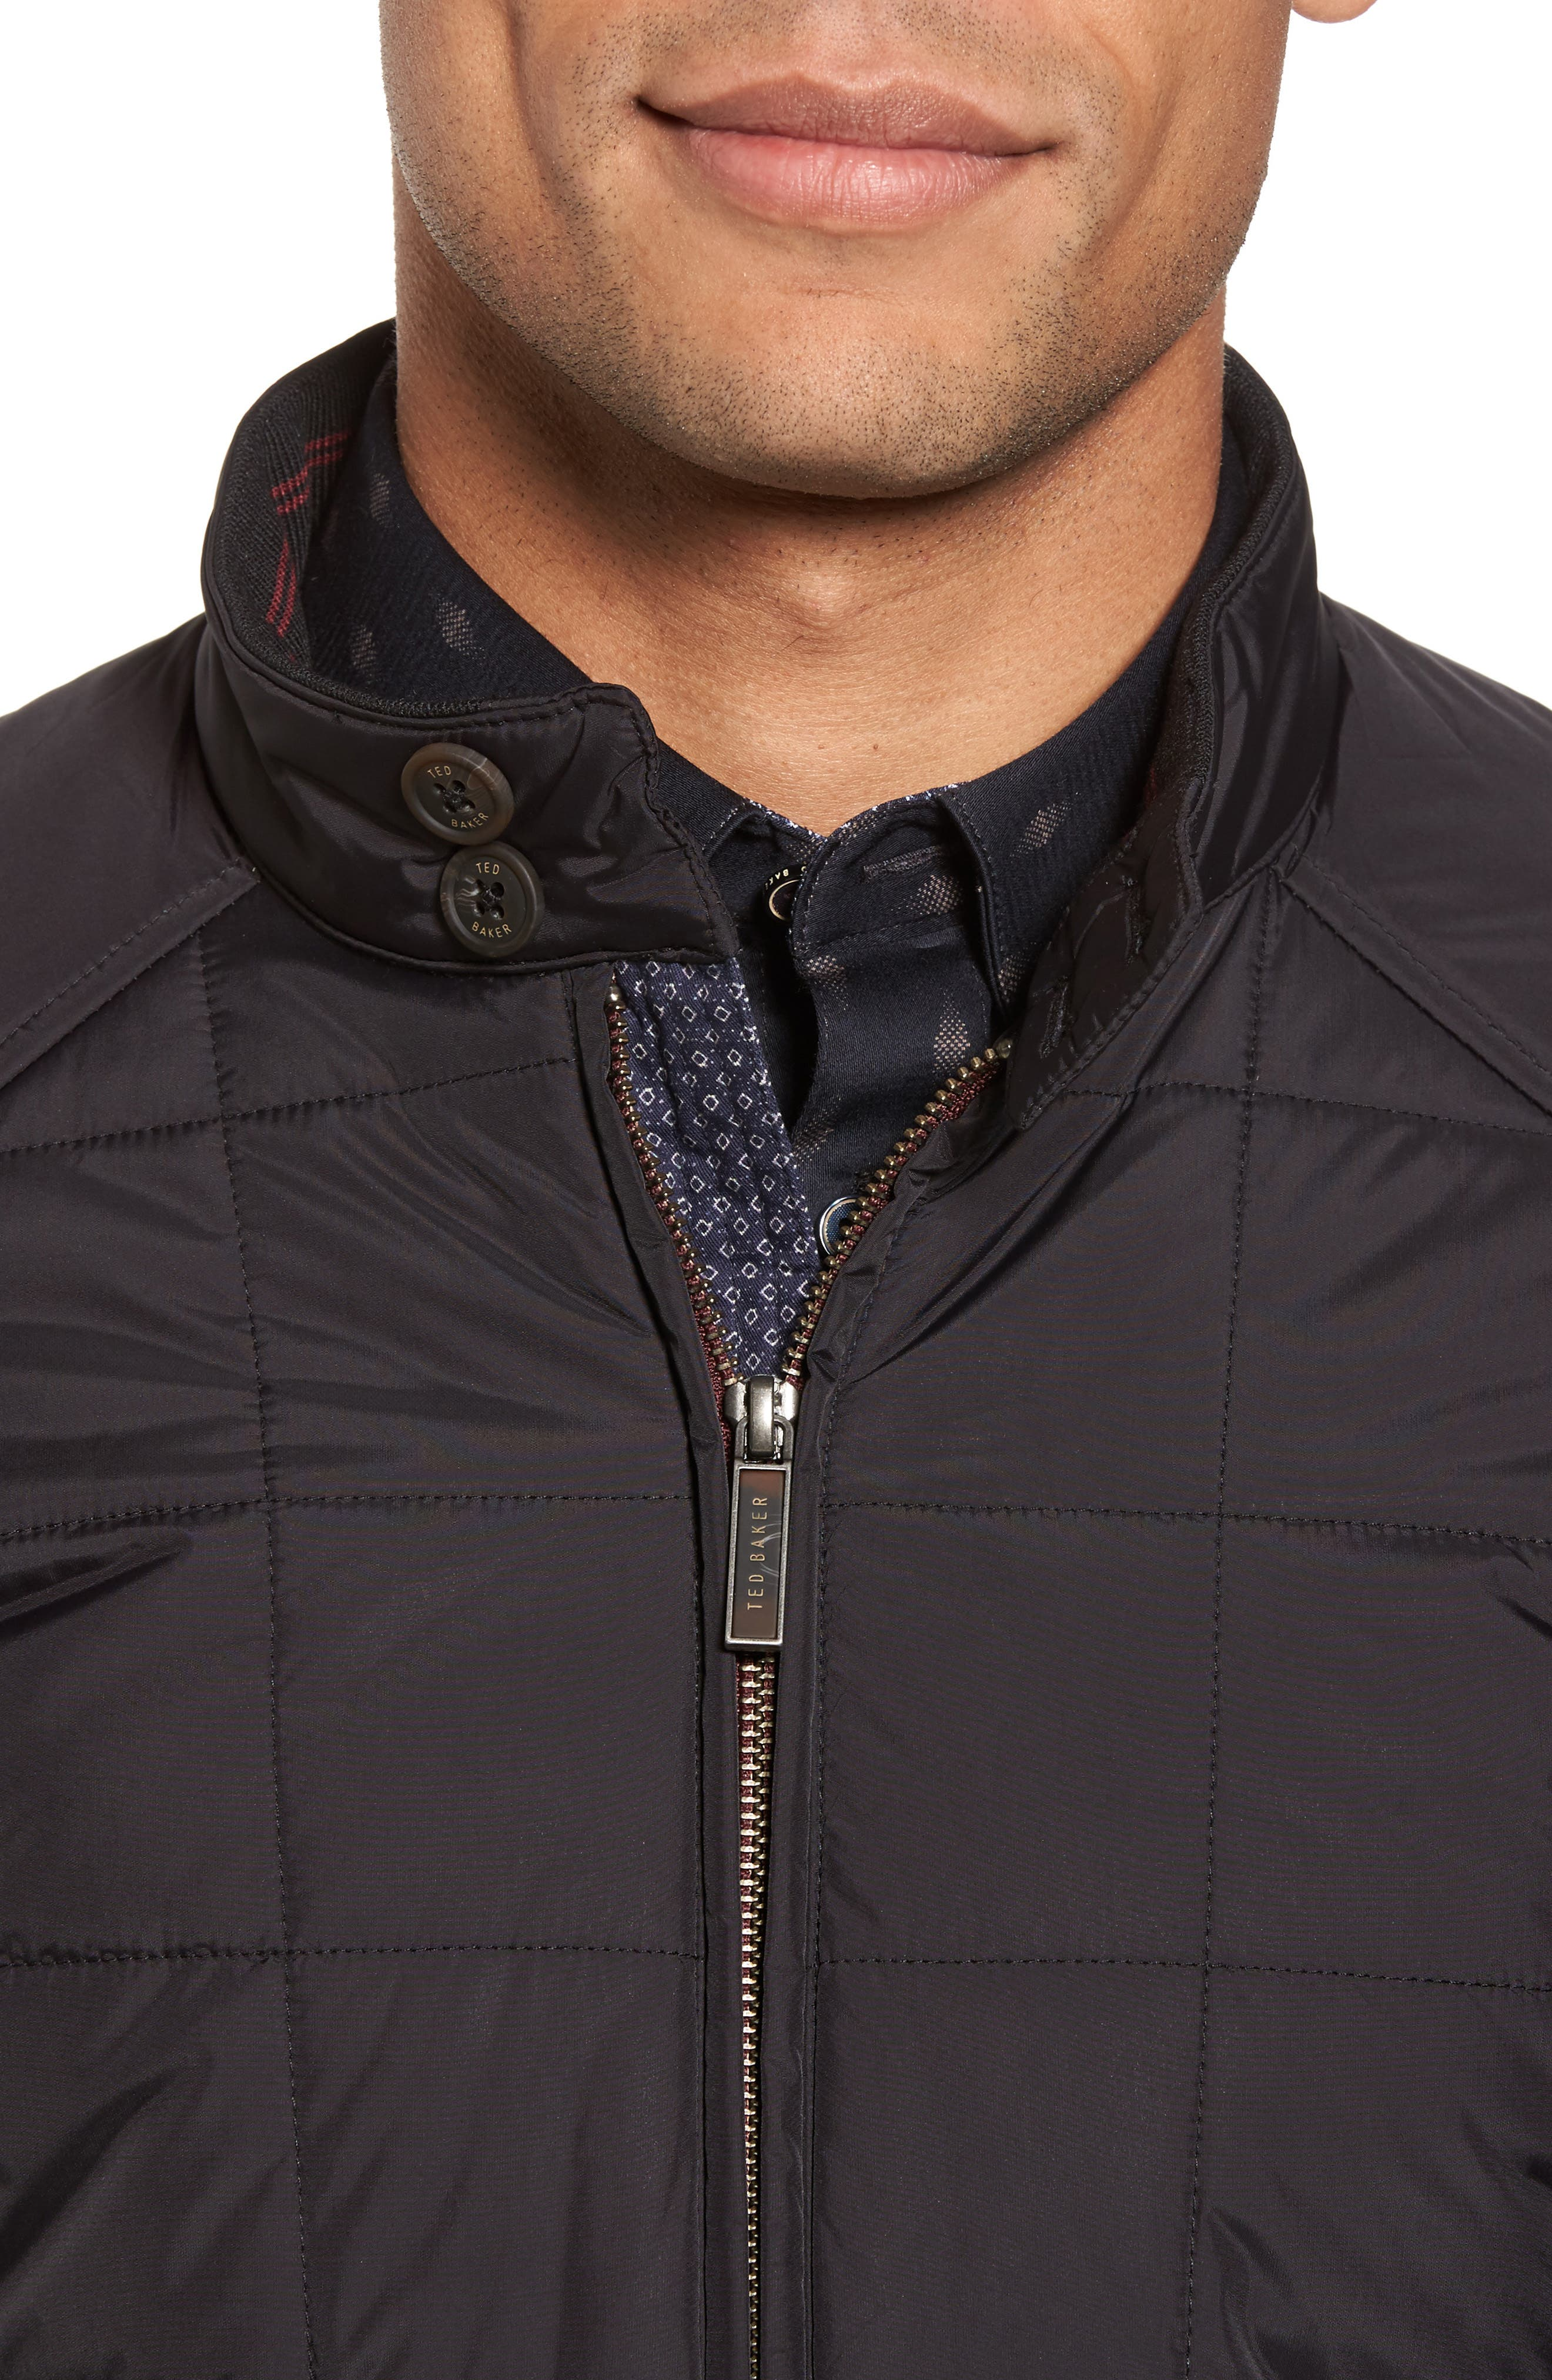 Alees Trim Fit Quilted Jacket,                             Alternate thumbnail 4, color,                             001